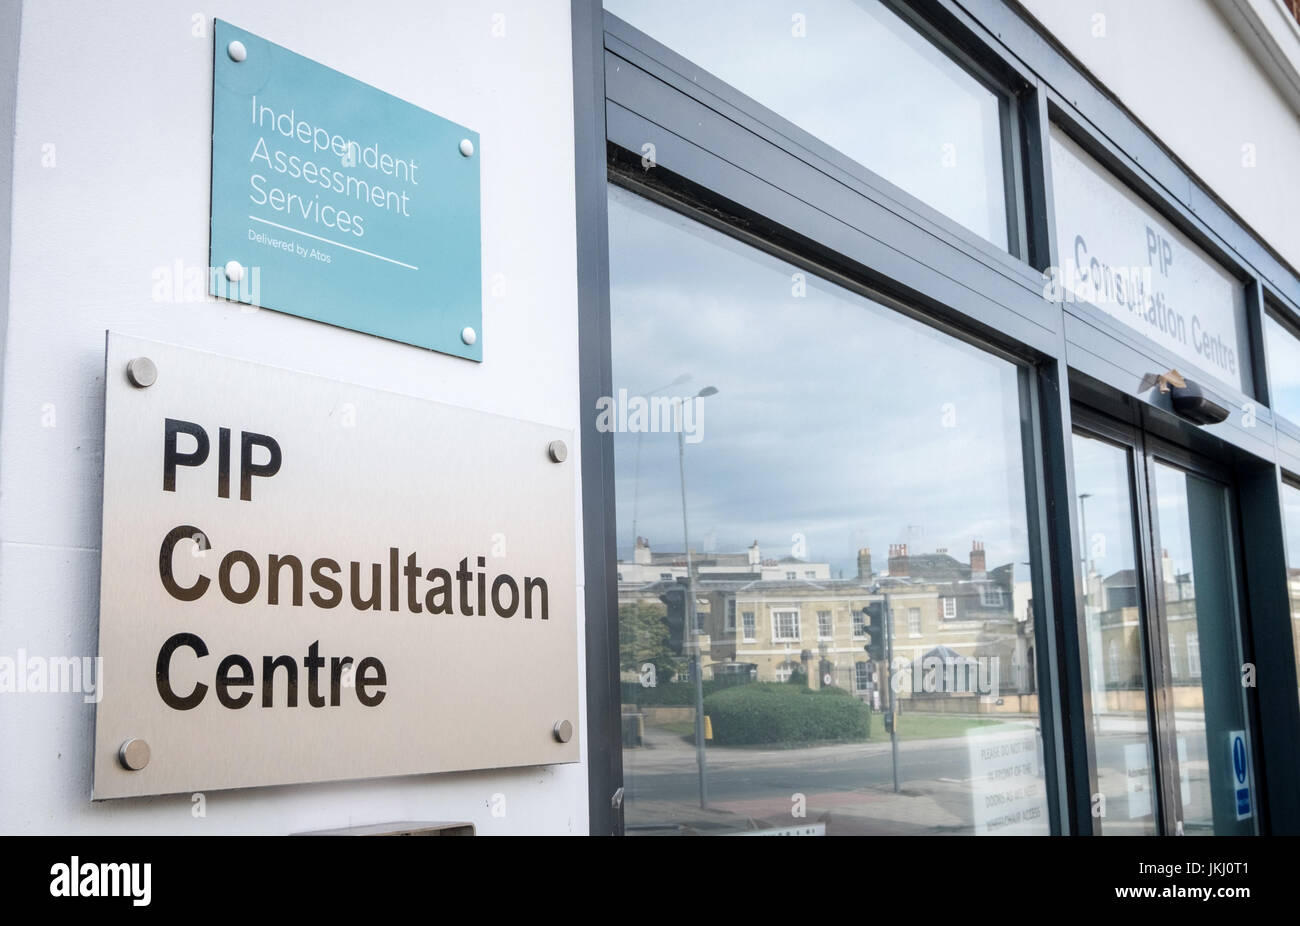 PIP ( Personal Independence Payments ) Consultation Centre, Southampton, Hampshire, UK - Stock Image